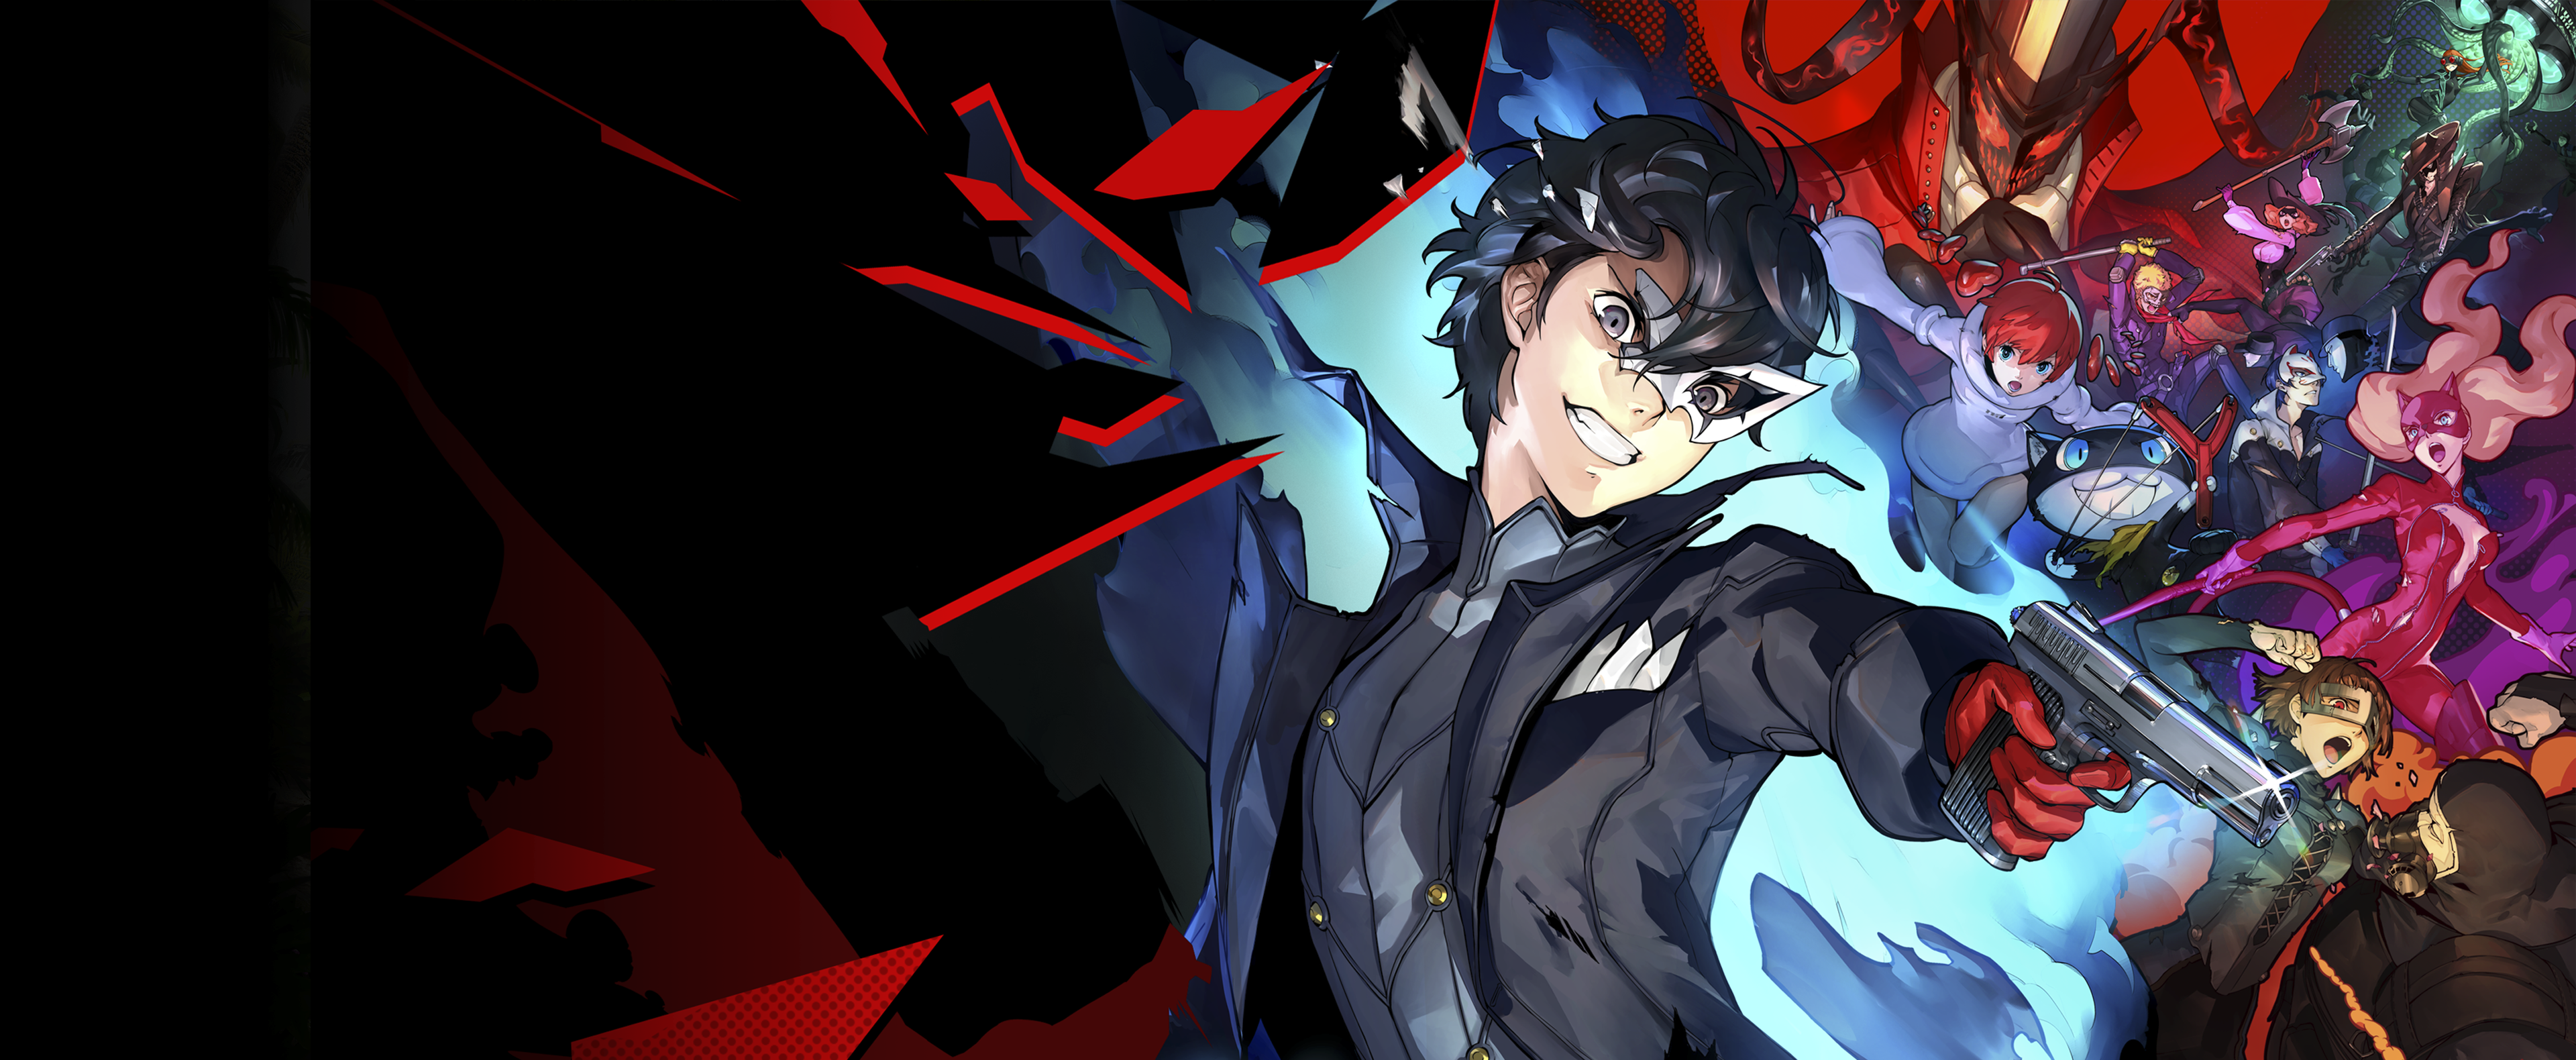 Persona 5 STRIKERS - Key Art